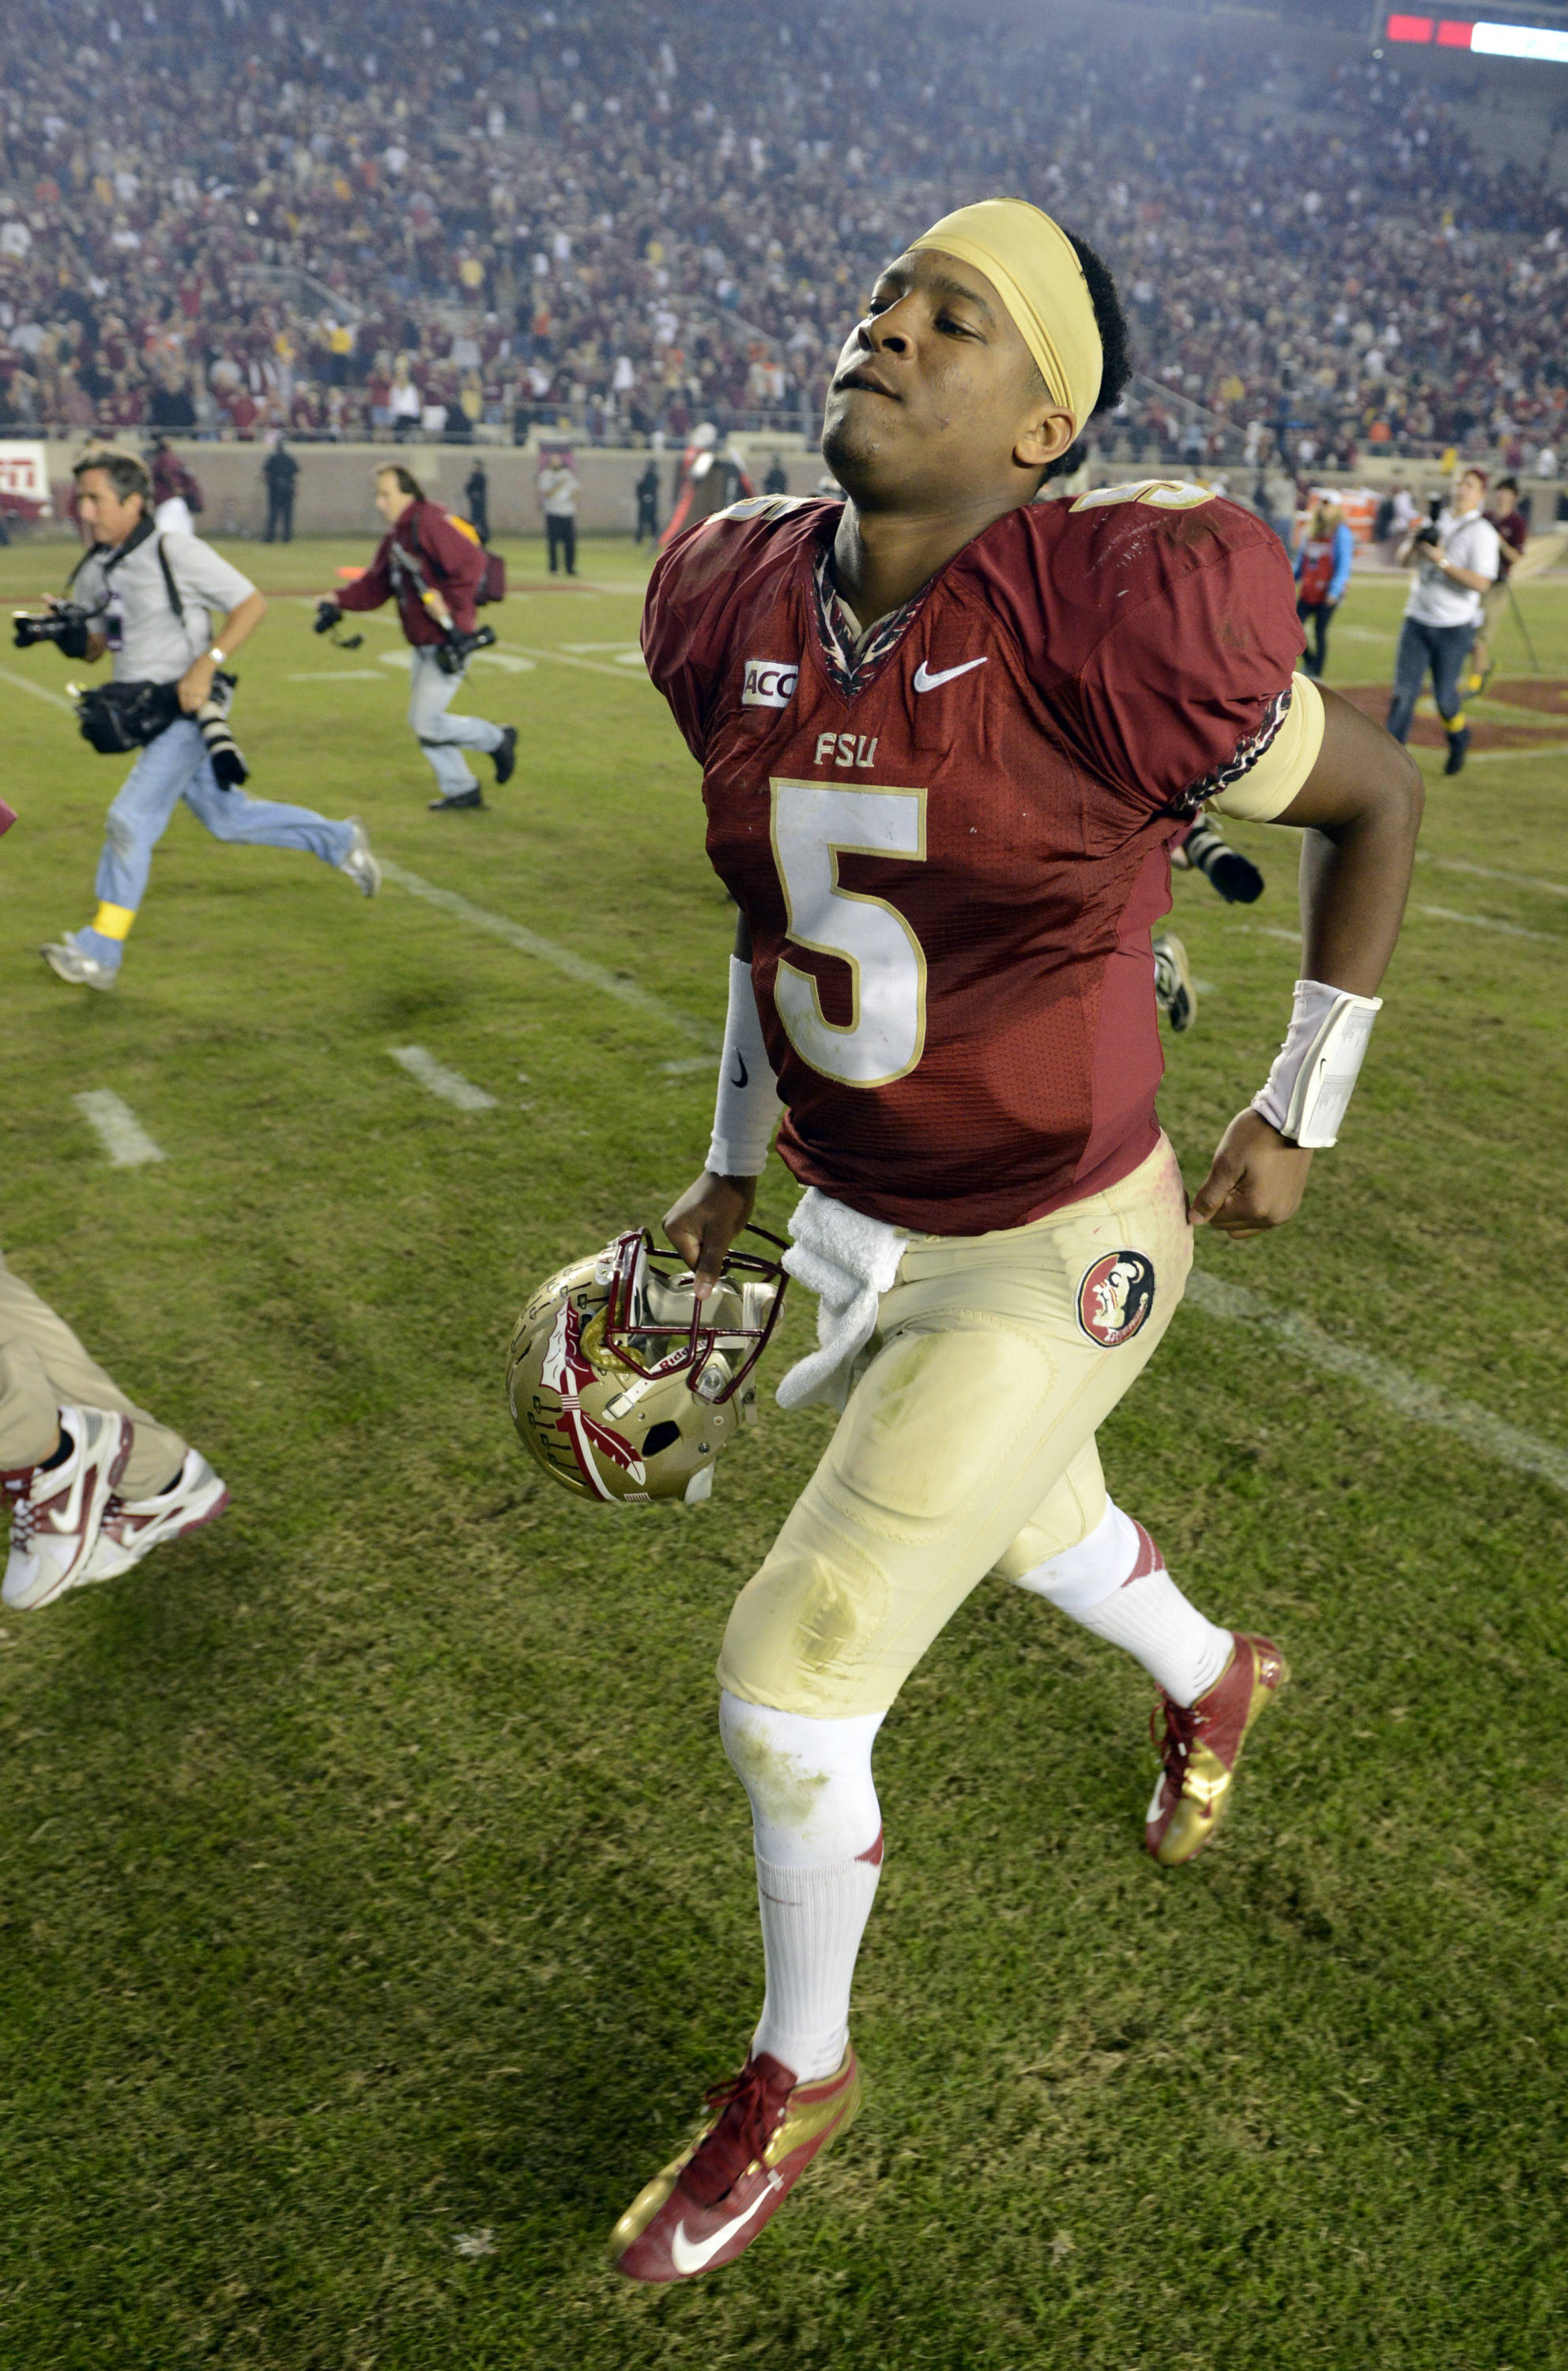 Florida State Seminoles quarterback Jameis Winston (5) runs off the field following the Seminoles 41-14 victory against the Miami Hurricanes at Doak Campbell Stadium. Mandatory Credit: John David Mercer-USA TODAY Sports